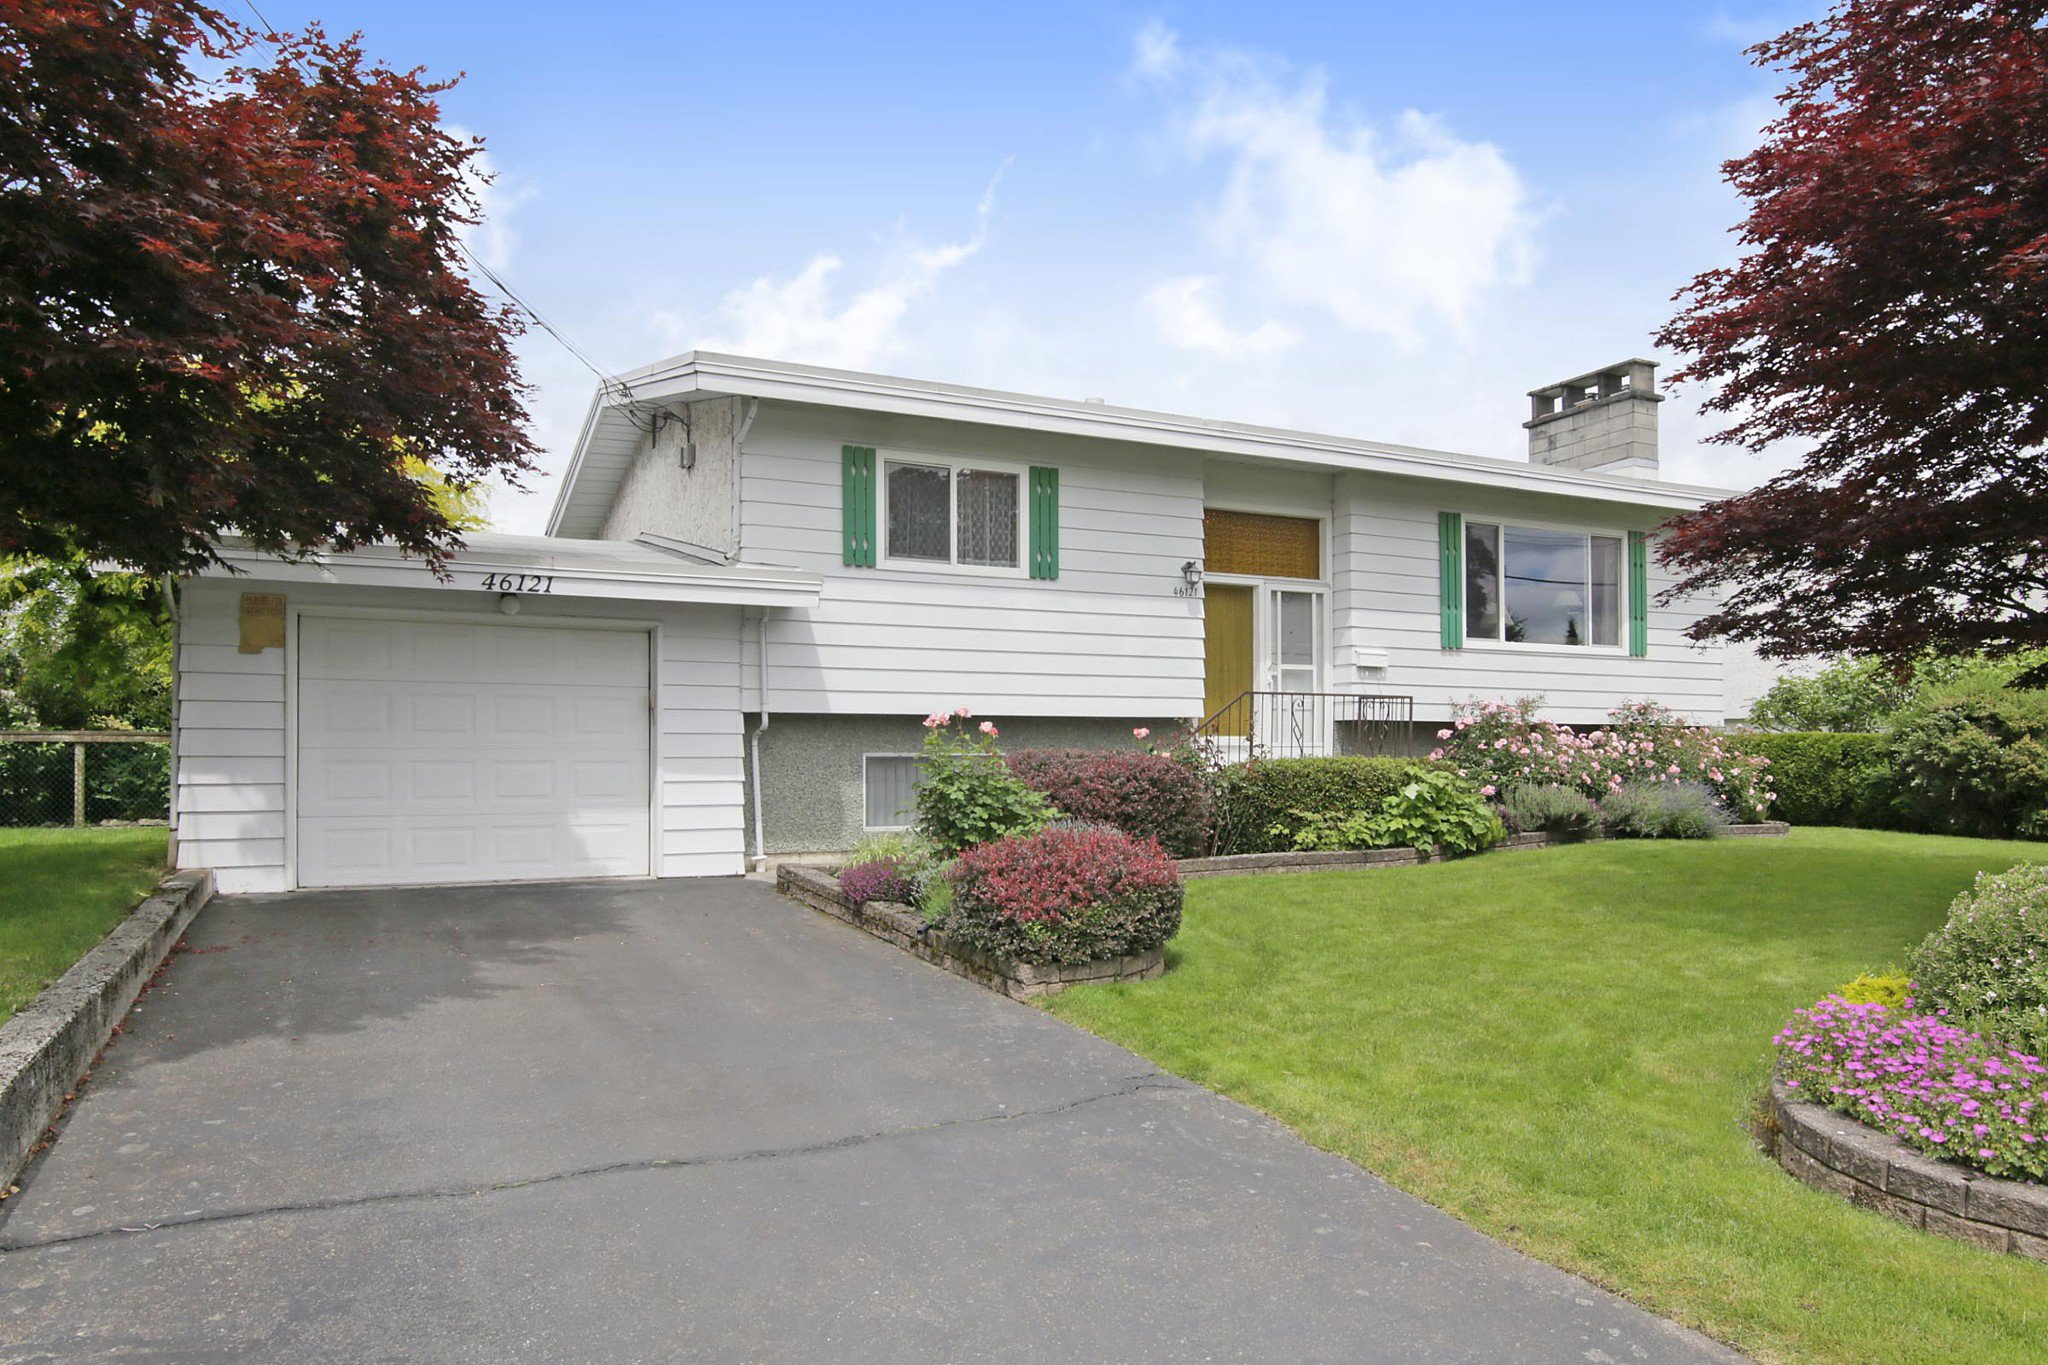 Main Photo: 46121 CLARE Avenue in Chilliwack: Fairfield Island House for sale : MLS®# R2464254